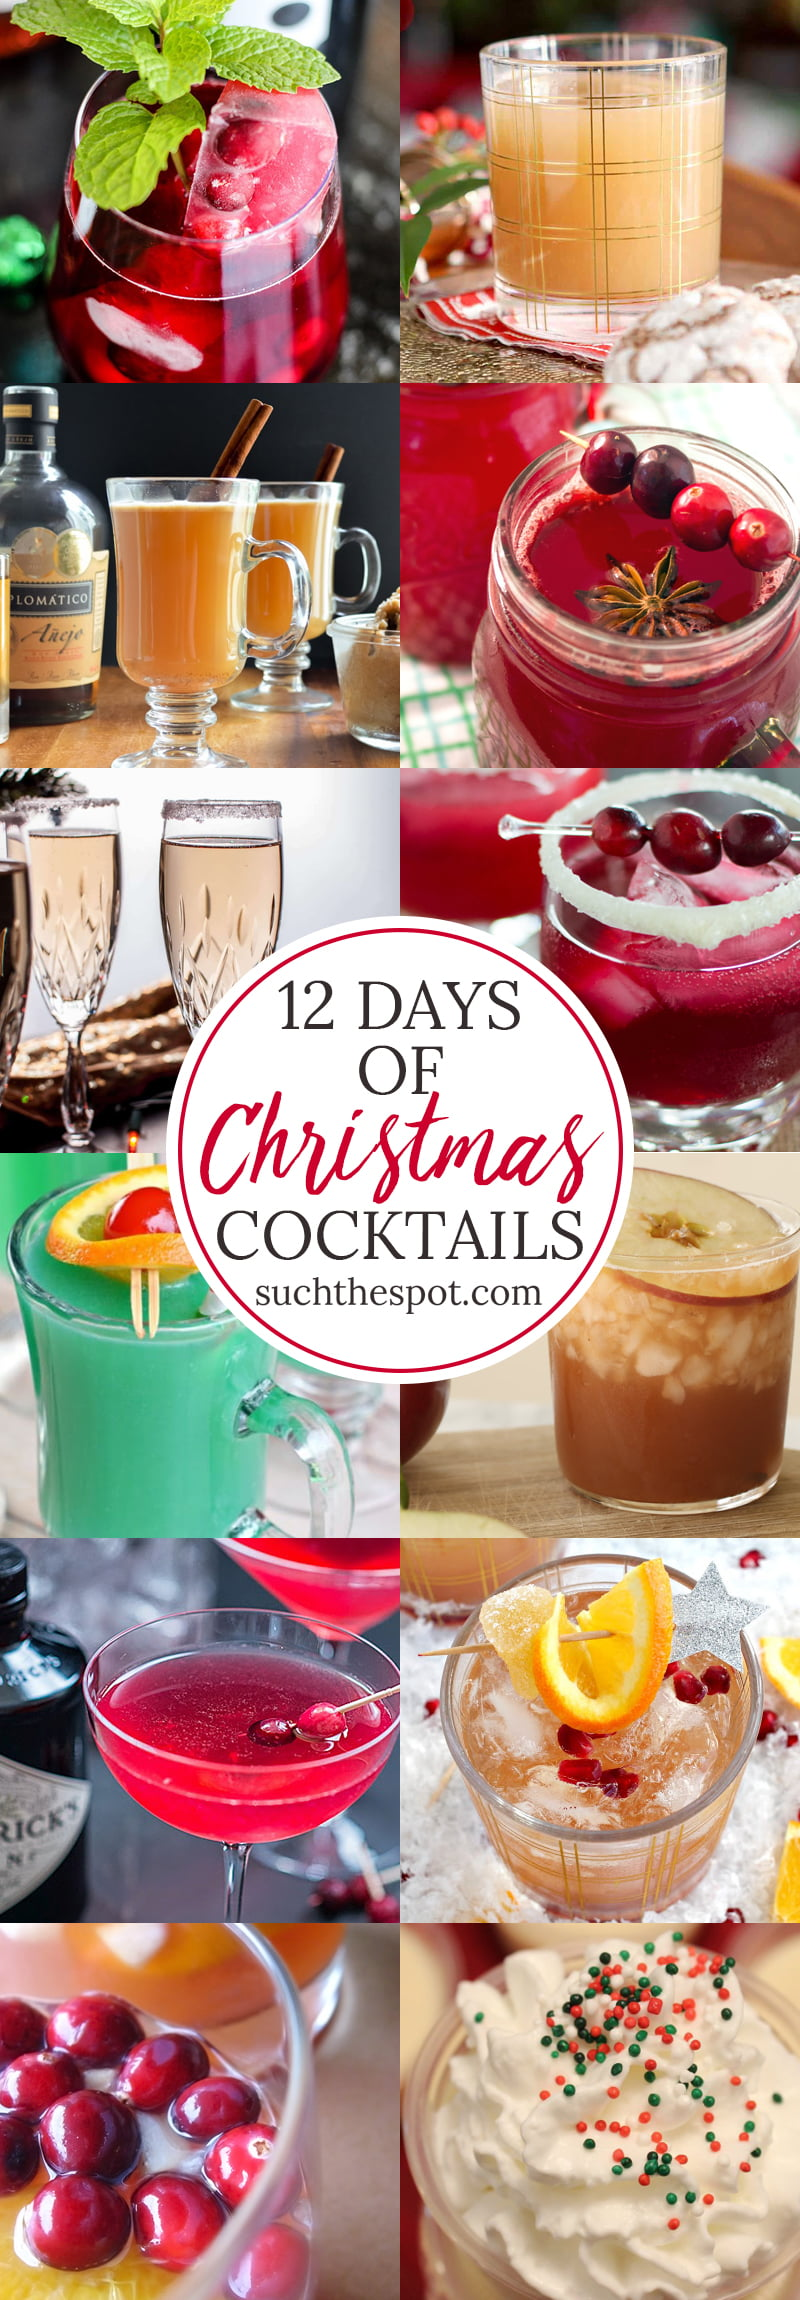 12 Days Of Christmas Cocktails Best Festive Drinks